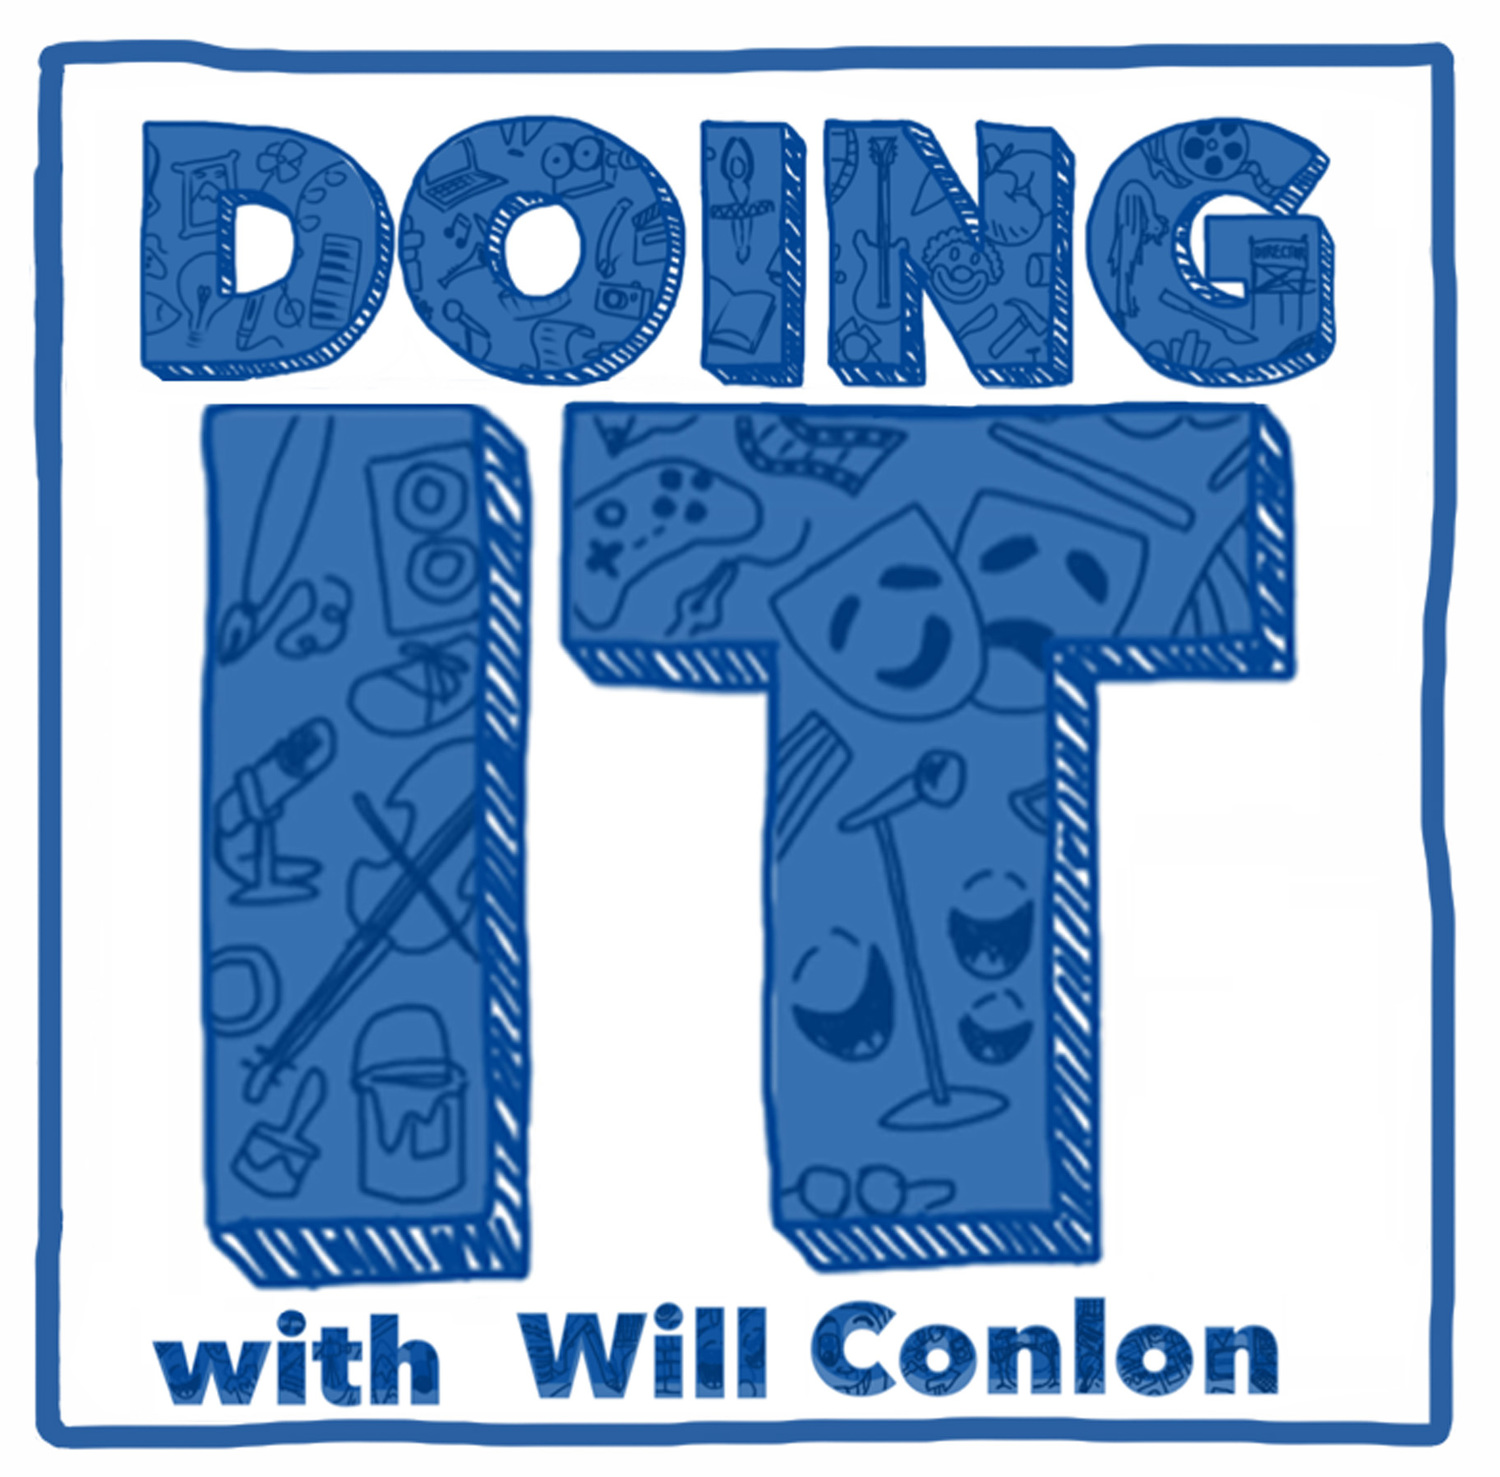 DOING IT with Will Conlon